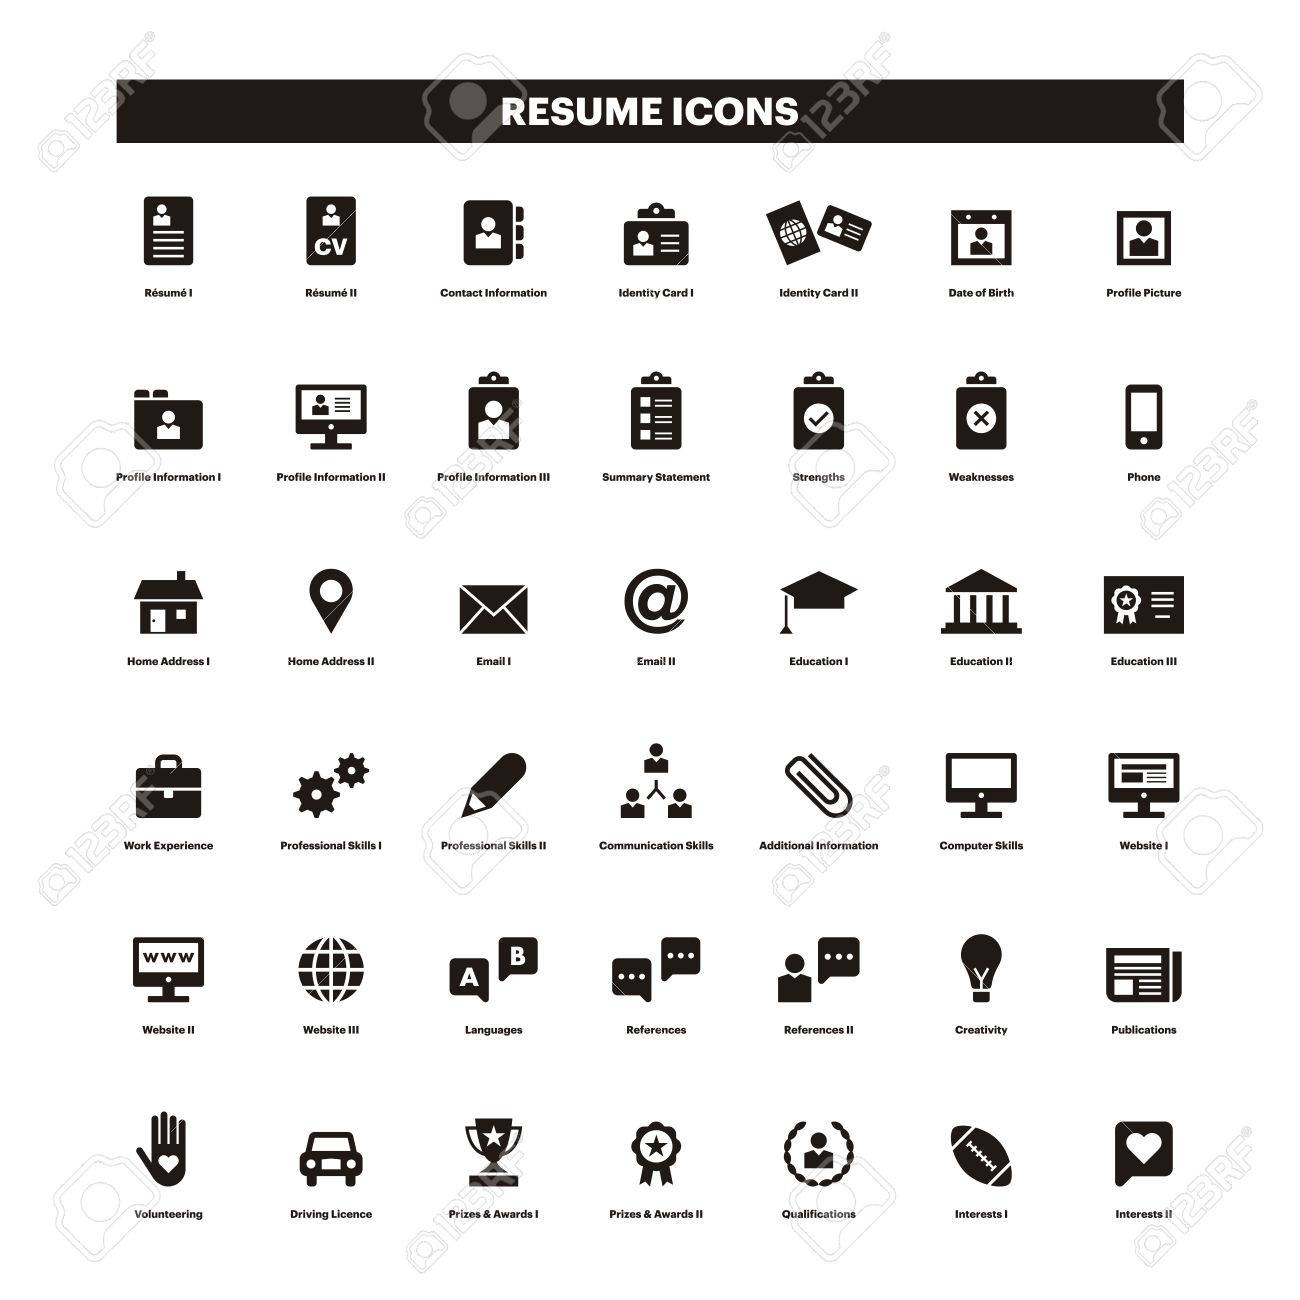 Icons For Resume.Cv And Resume Black Solid Icons